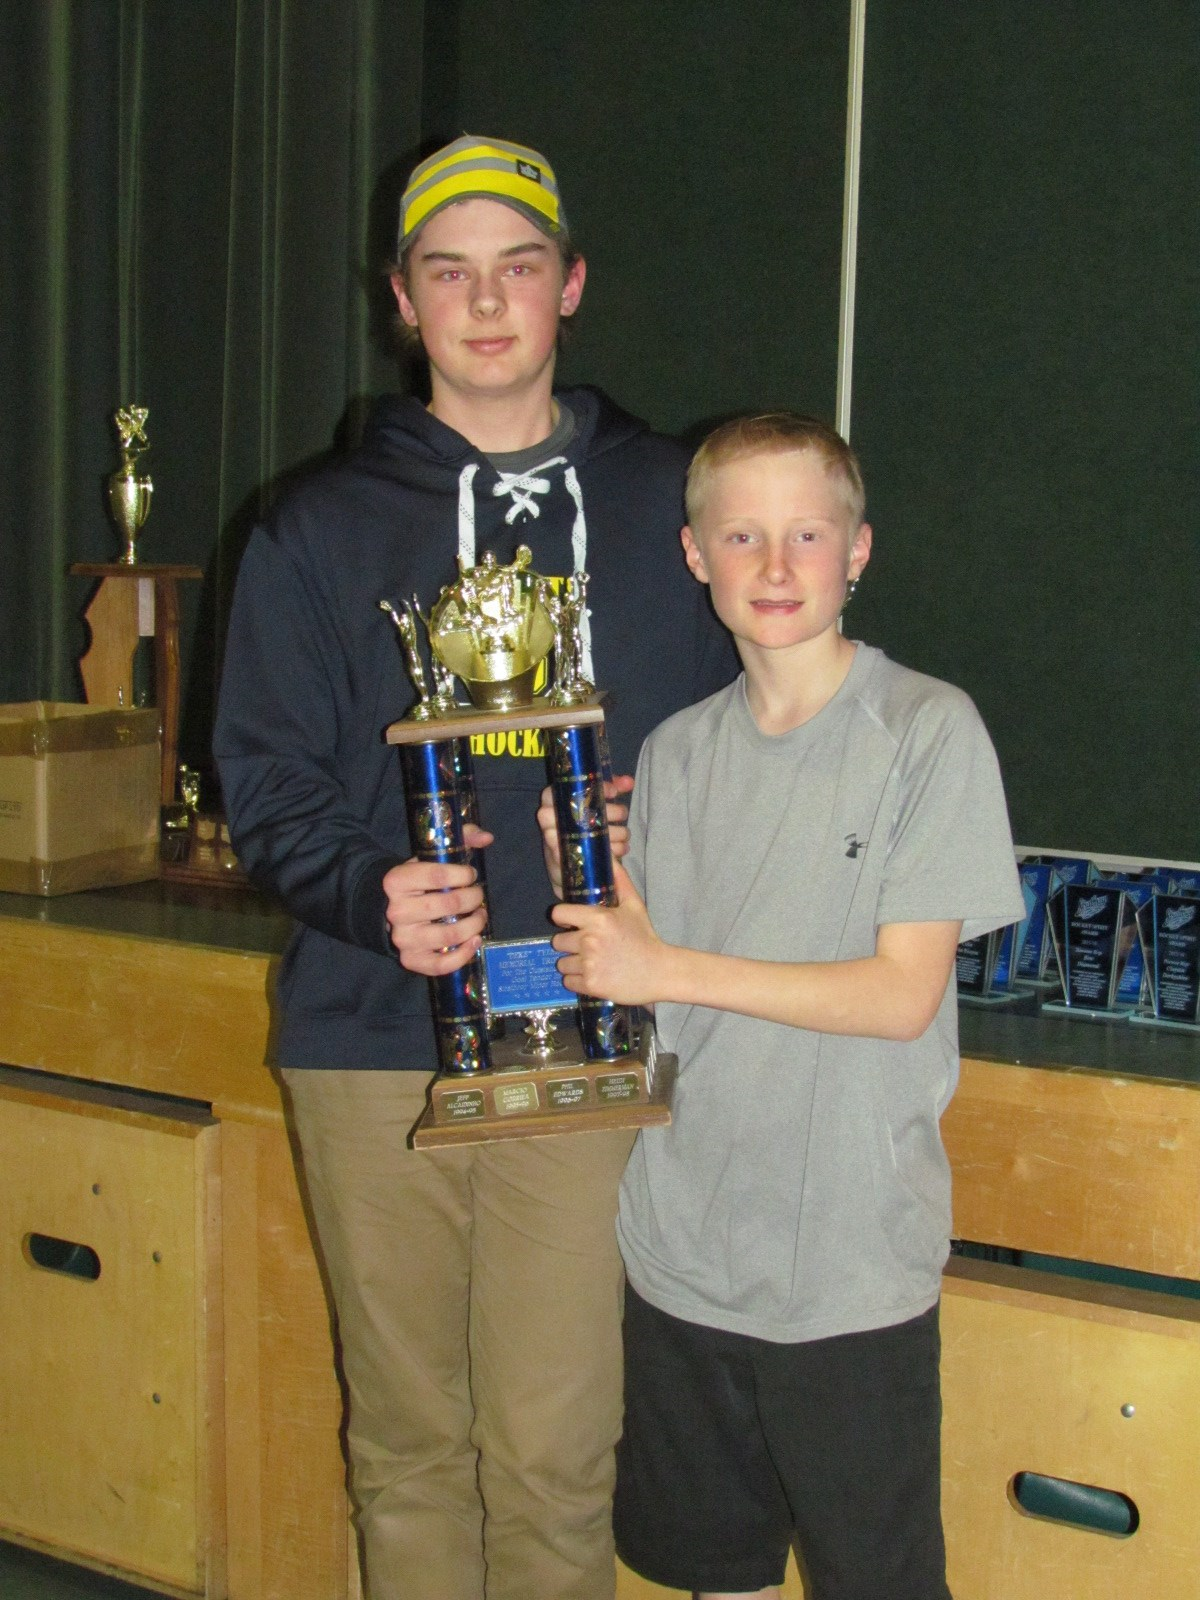 A._Goalie_Awards_-_Kevin_Linker_and_Griffen_Urquhart.JPG